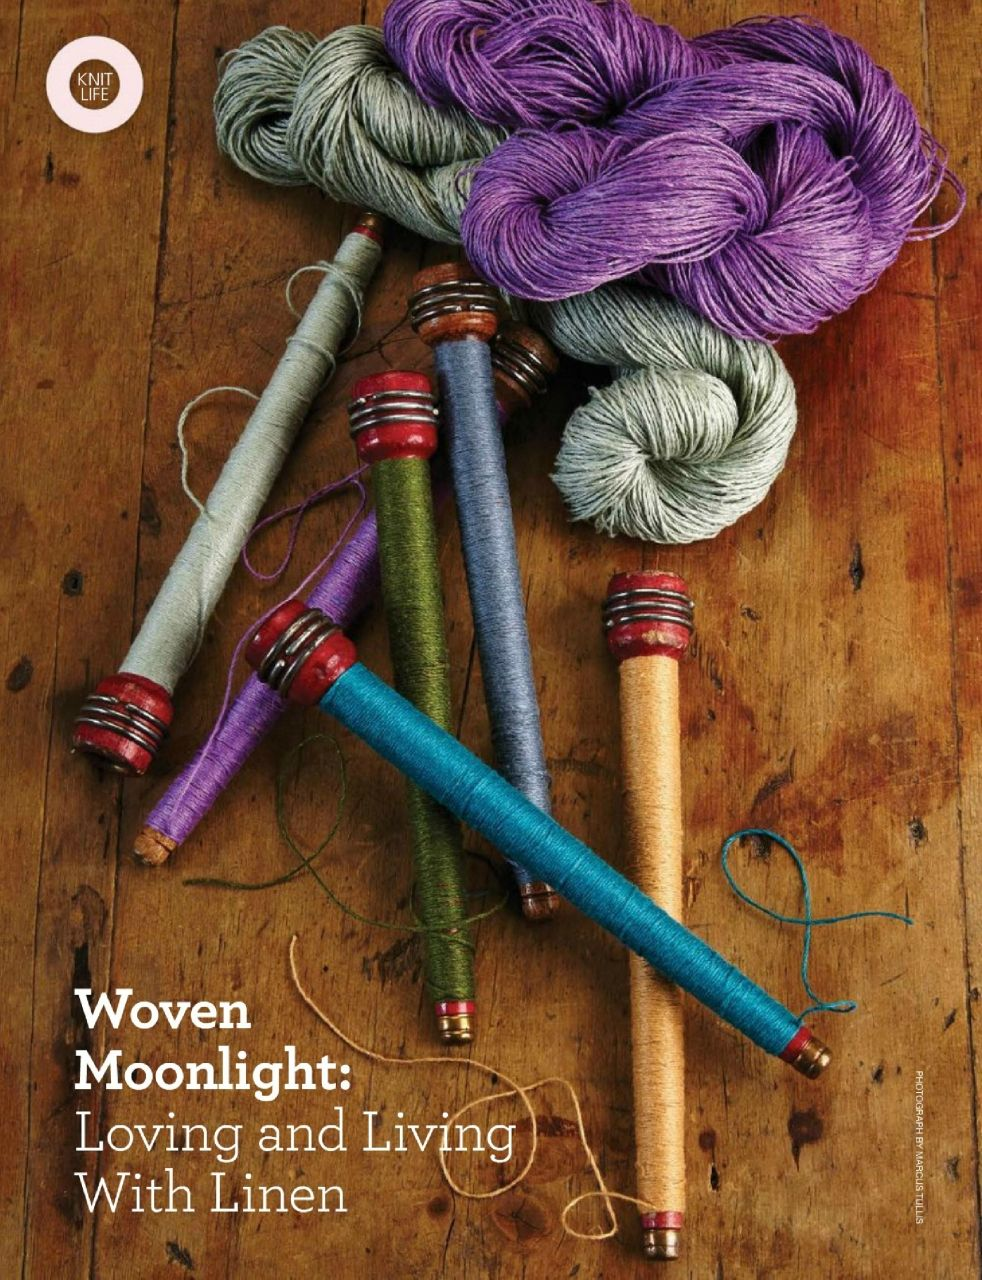 Photo From Album Vogue Knitting Early Spring 2016 On Vyazanie Album Vogue Knitting I Spring 2016